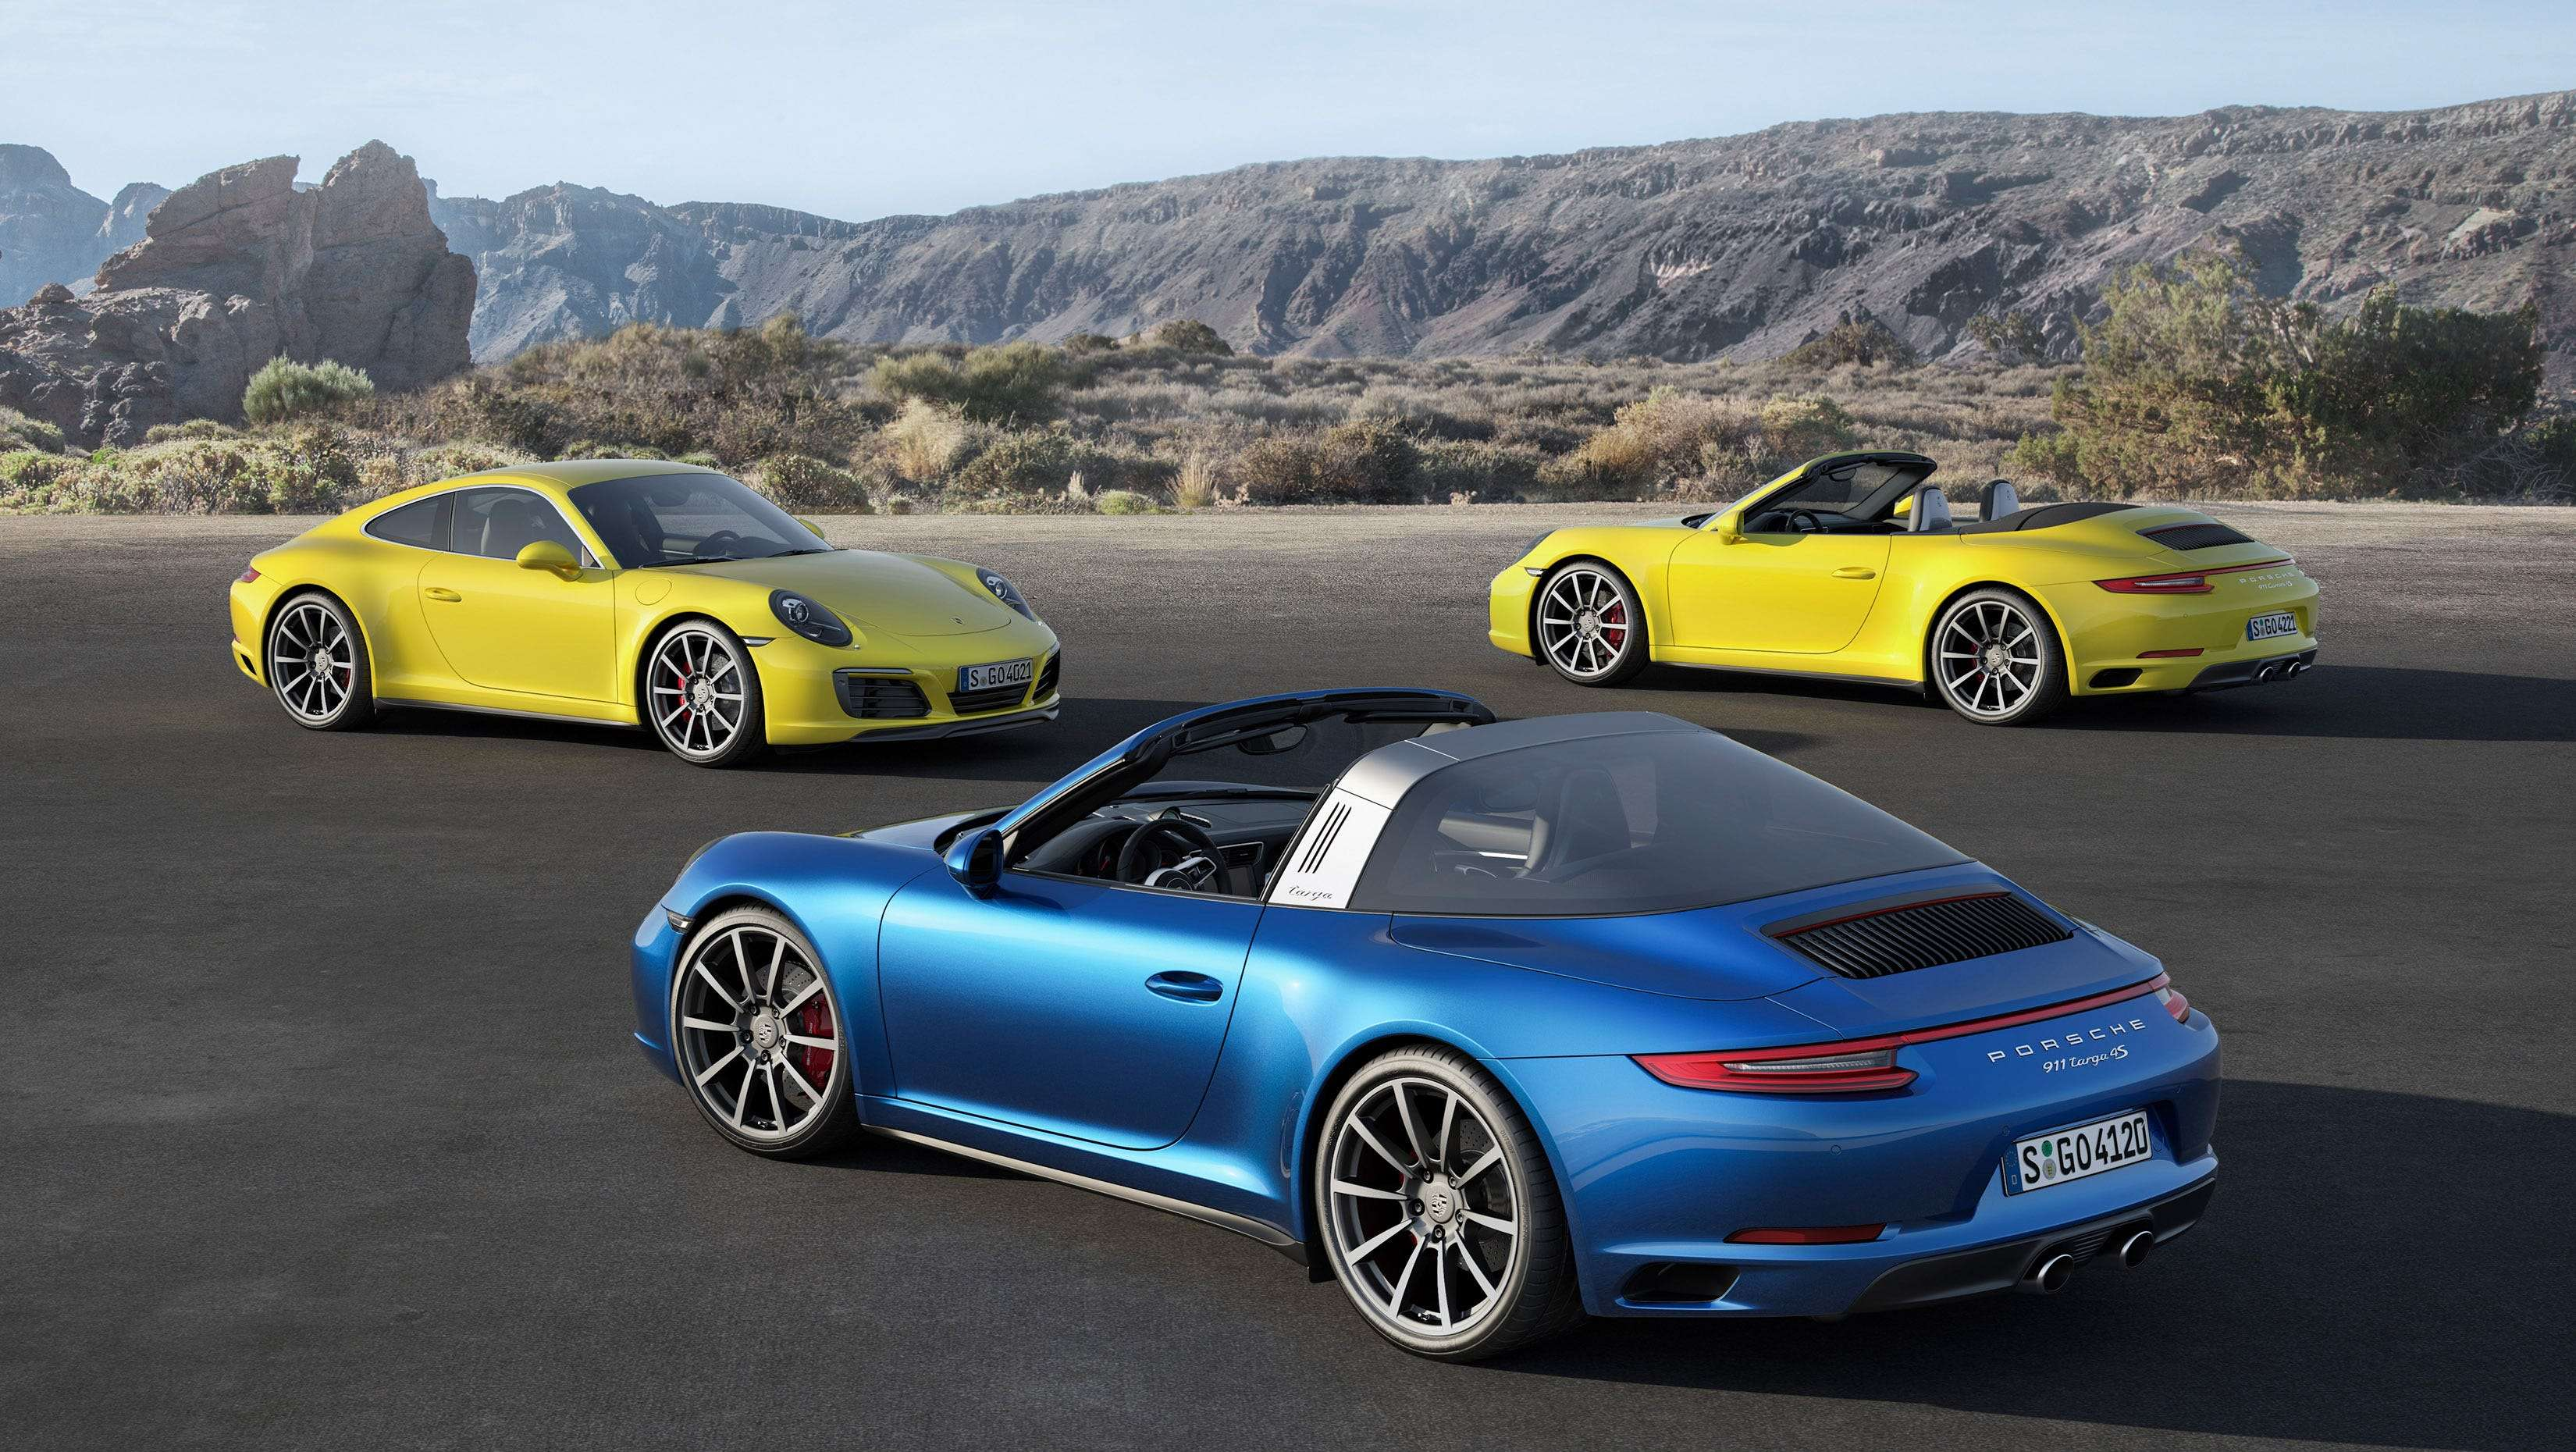 Porsche Orders Stop Sale On Certain Cars For Excess Emissions